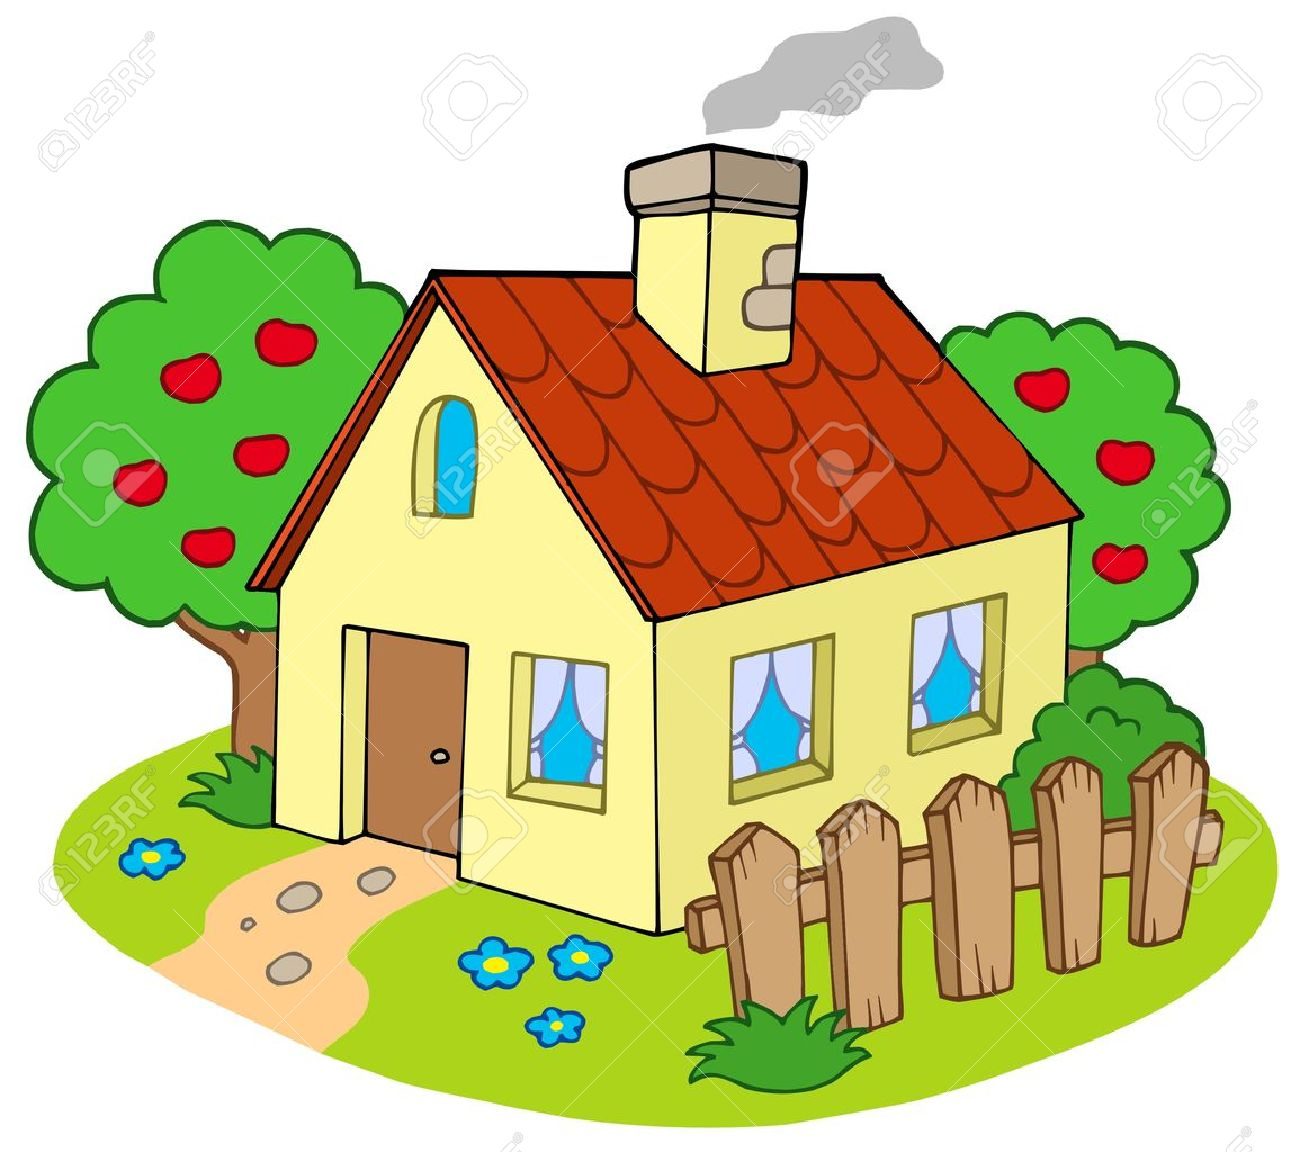 House with garden - vector illustration. Stock Vector - 5096936